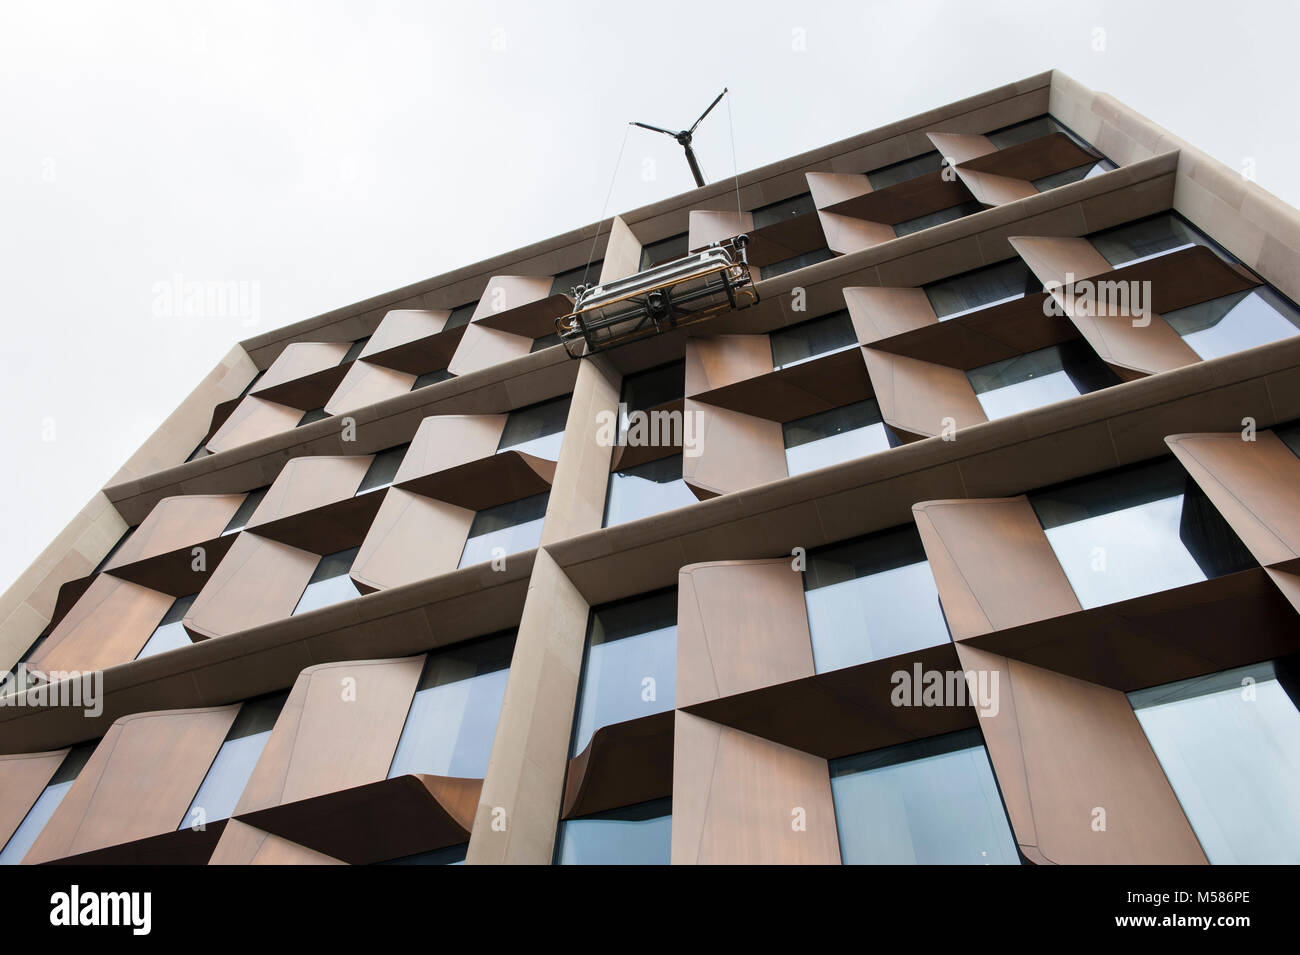 Window cleaners clean the The Bloomberg European headquarters at 2 Queen Victoria St, London in England.  The Building - Stock Image